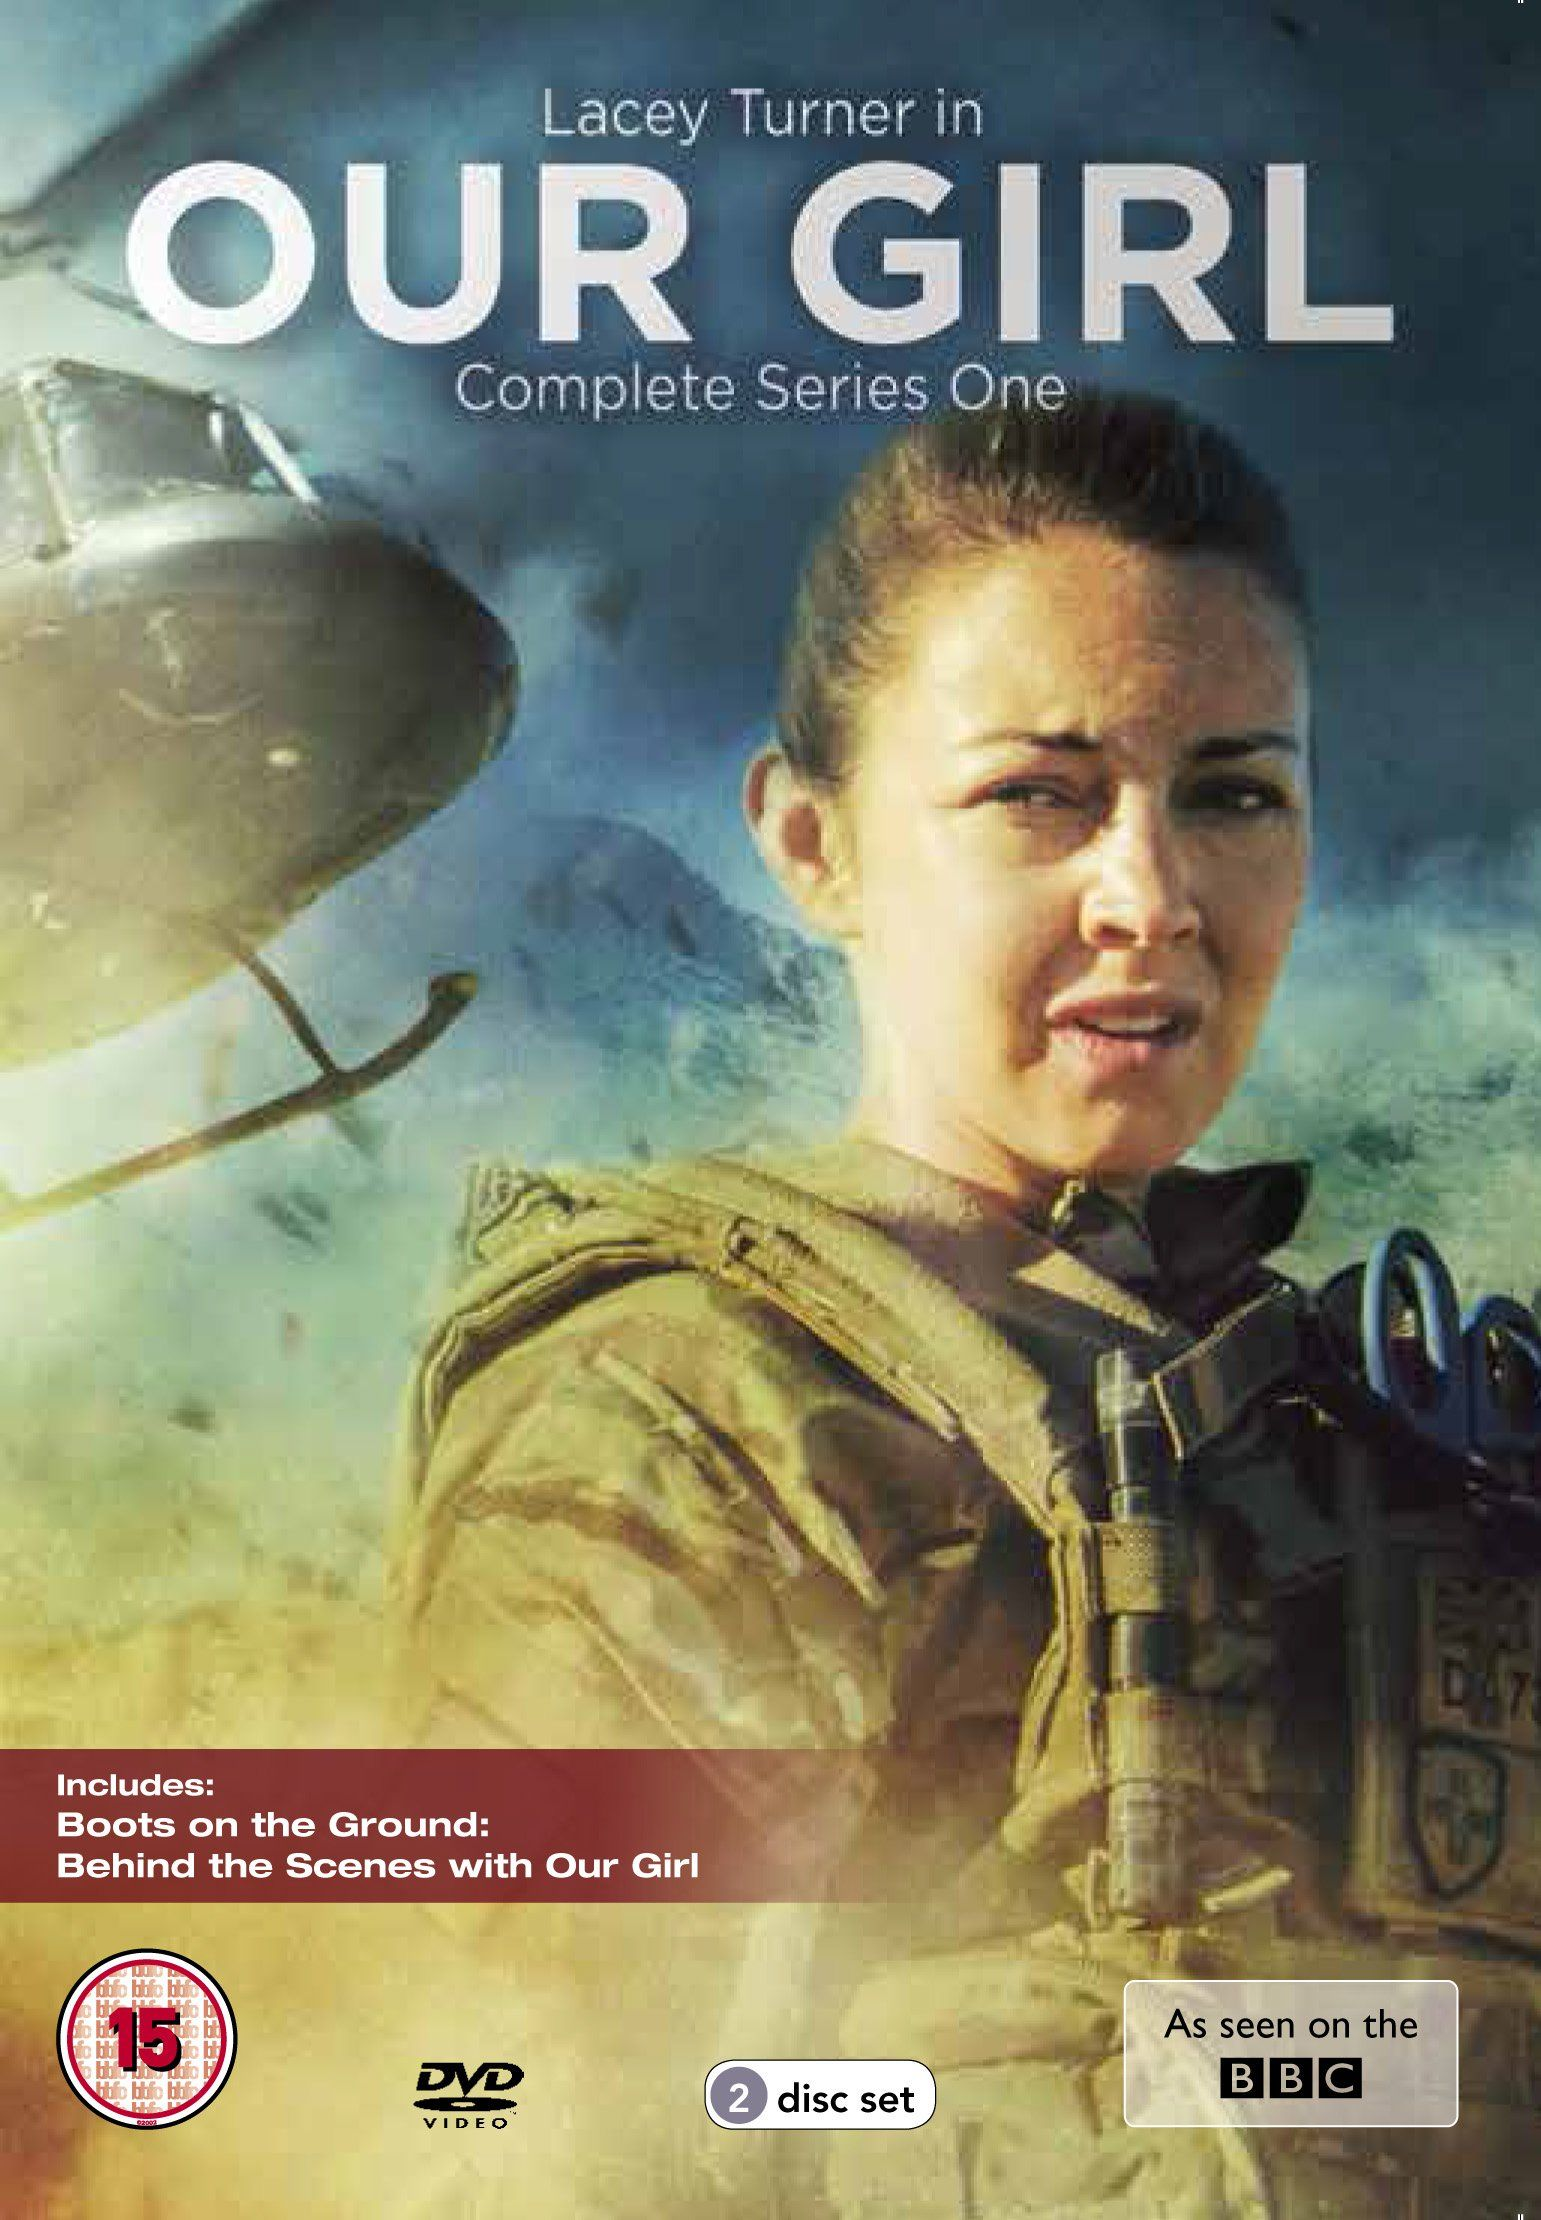 Our Girl Series 1 Dvd Amazon Co Uk Lacey Turner Dvd Blu Ray Just Watched Loved Our Girl Series 1 Our Girl Bbc Girl Film